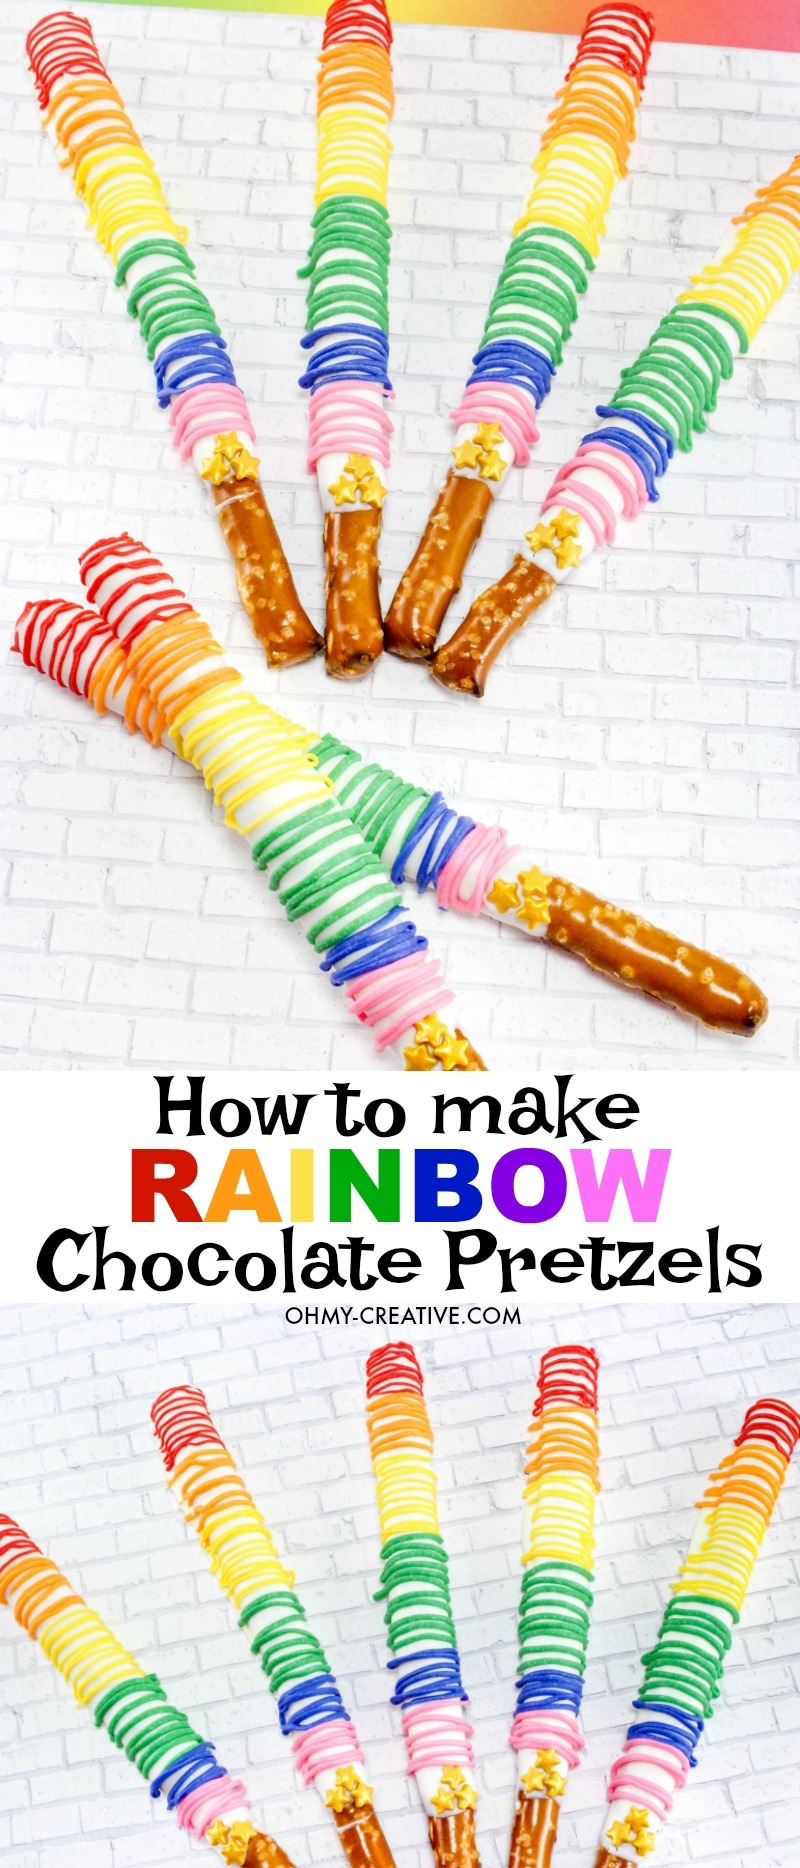 How To Make Chocolate Covered Pretzels With Rainbow Drizzel - Oh ...